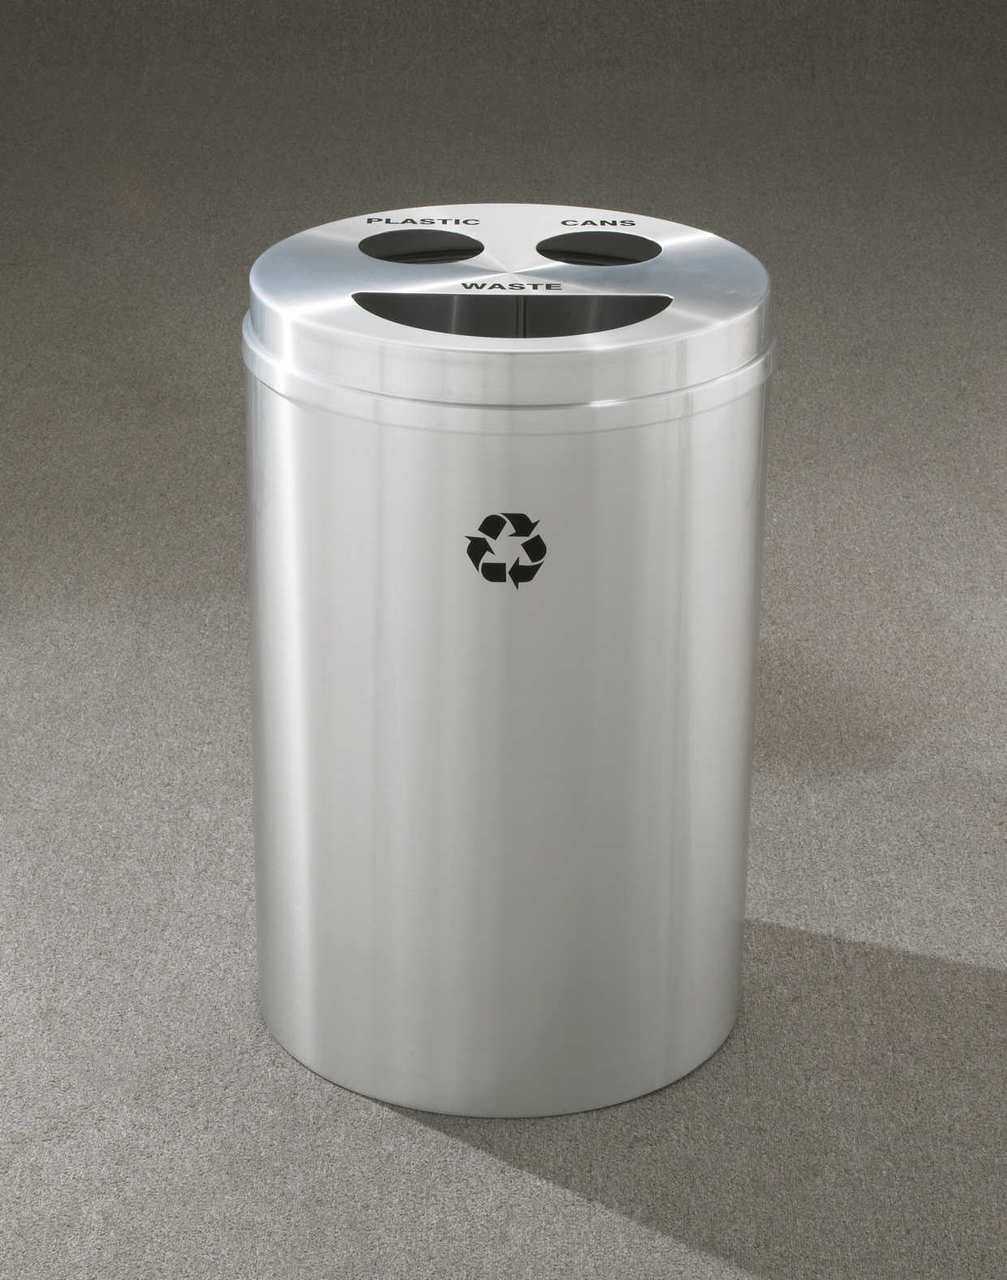 33 Gallon Glaro 3 in 1 Recycle Bin BCT-2032 (29 Colors, 4 Lid Styles)